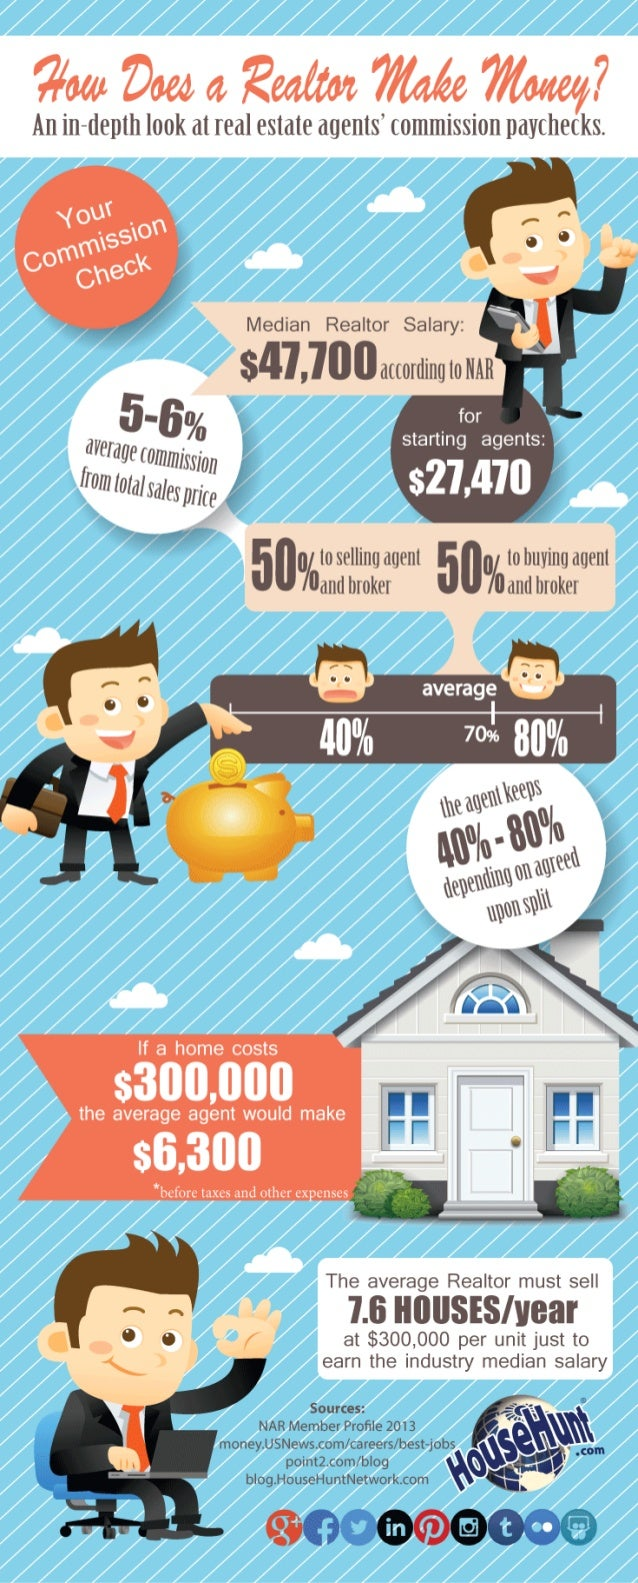 Commissions and Splits in Real Estate Agent Compensation